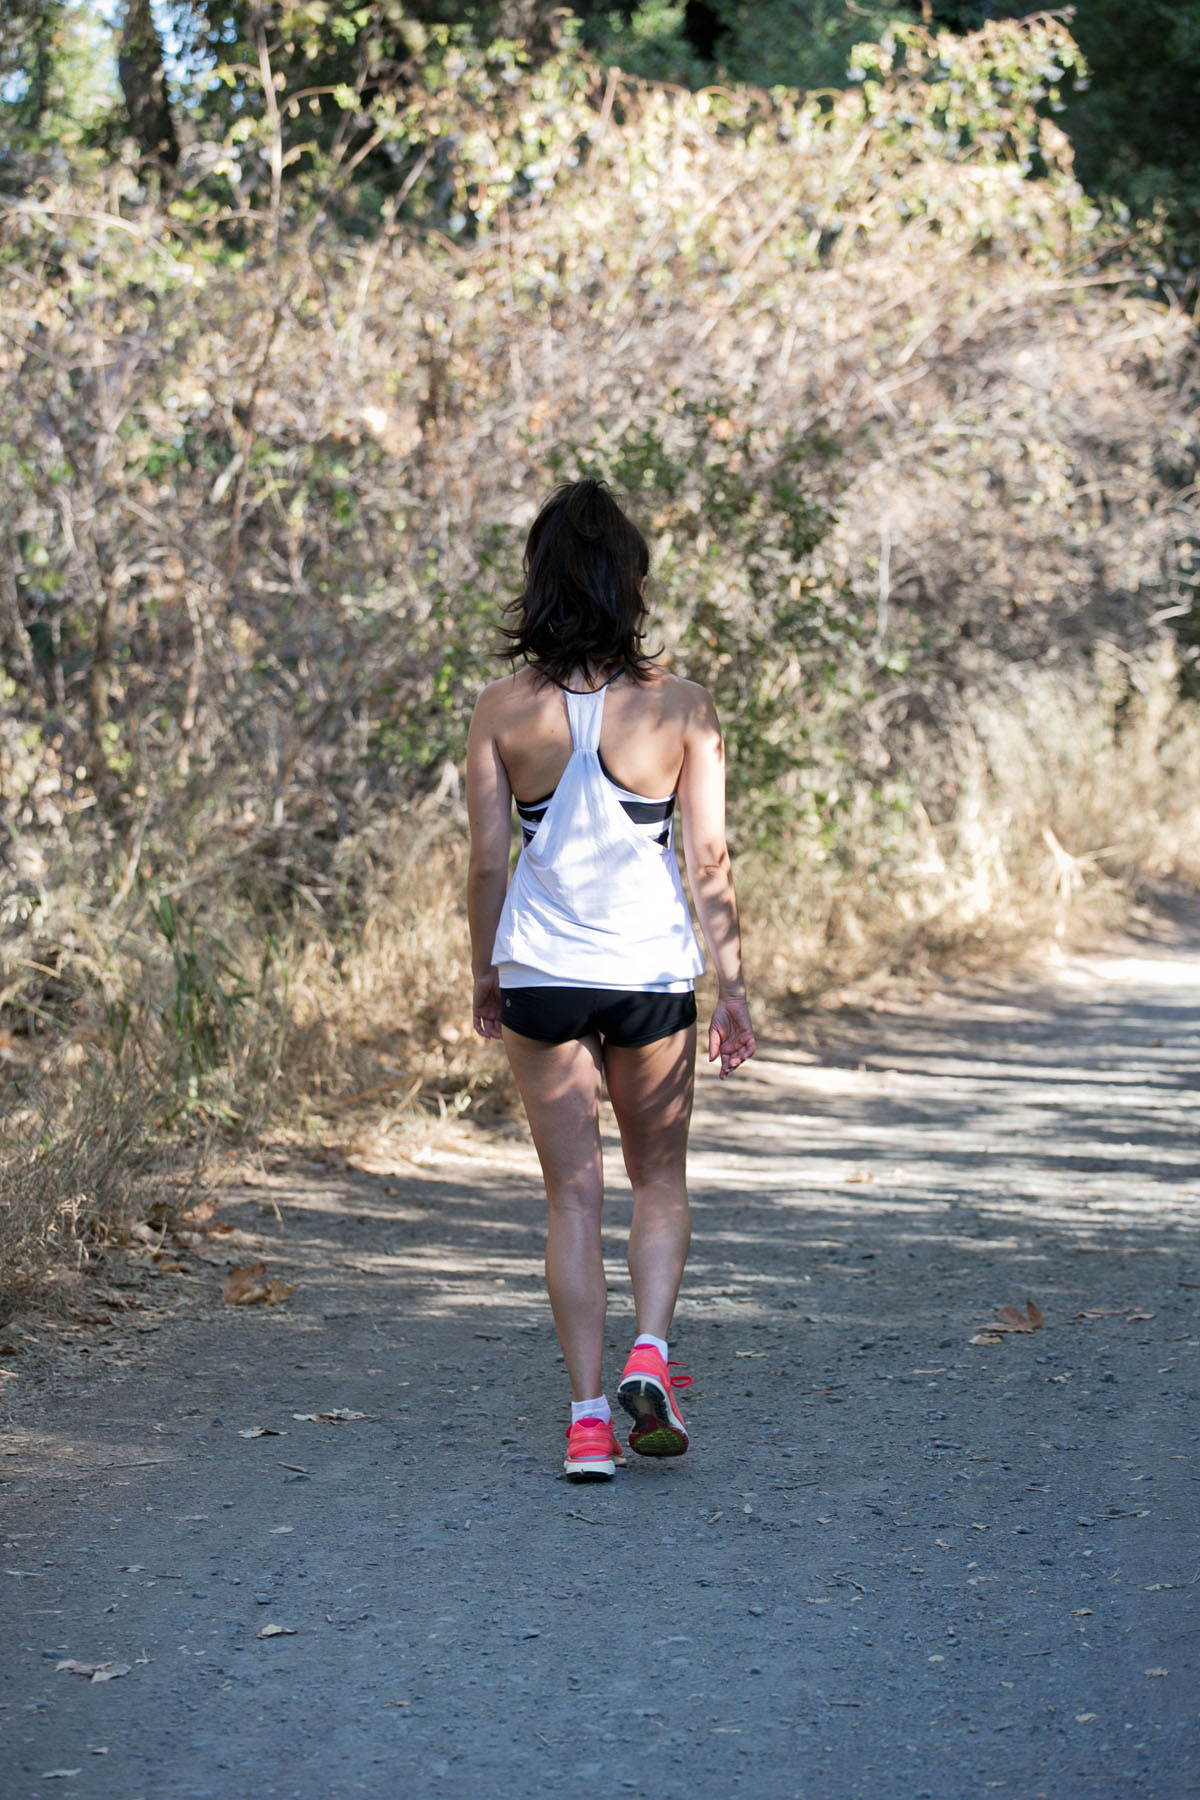 la hikes, los angeles hikes, hiking la, lululemon top, lululemon shorts, nike pink shoes, ponytail, fitness blog, la model, camille newbern, the la survival guide, la survival guide - Hiking Benefits by popular Los Angeles blogger The LA Survival Guide